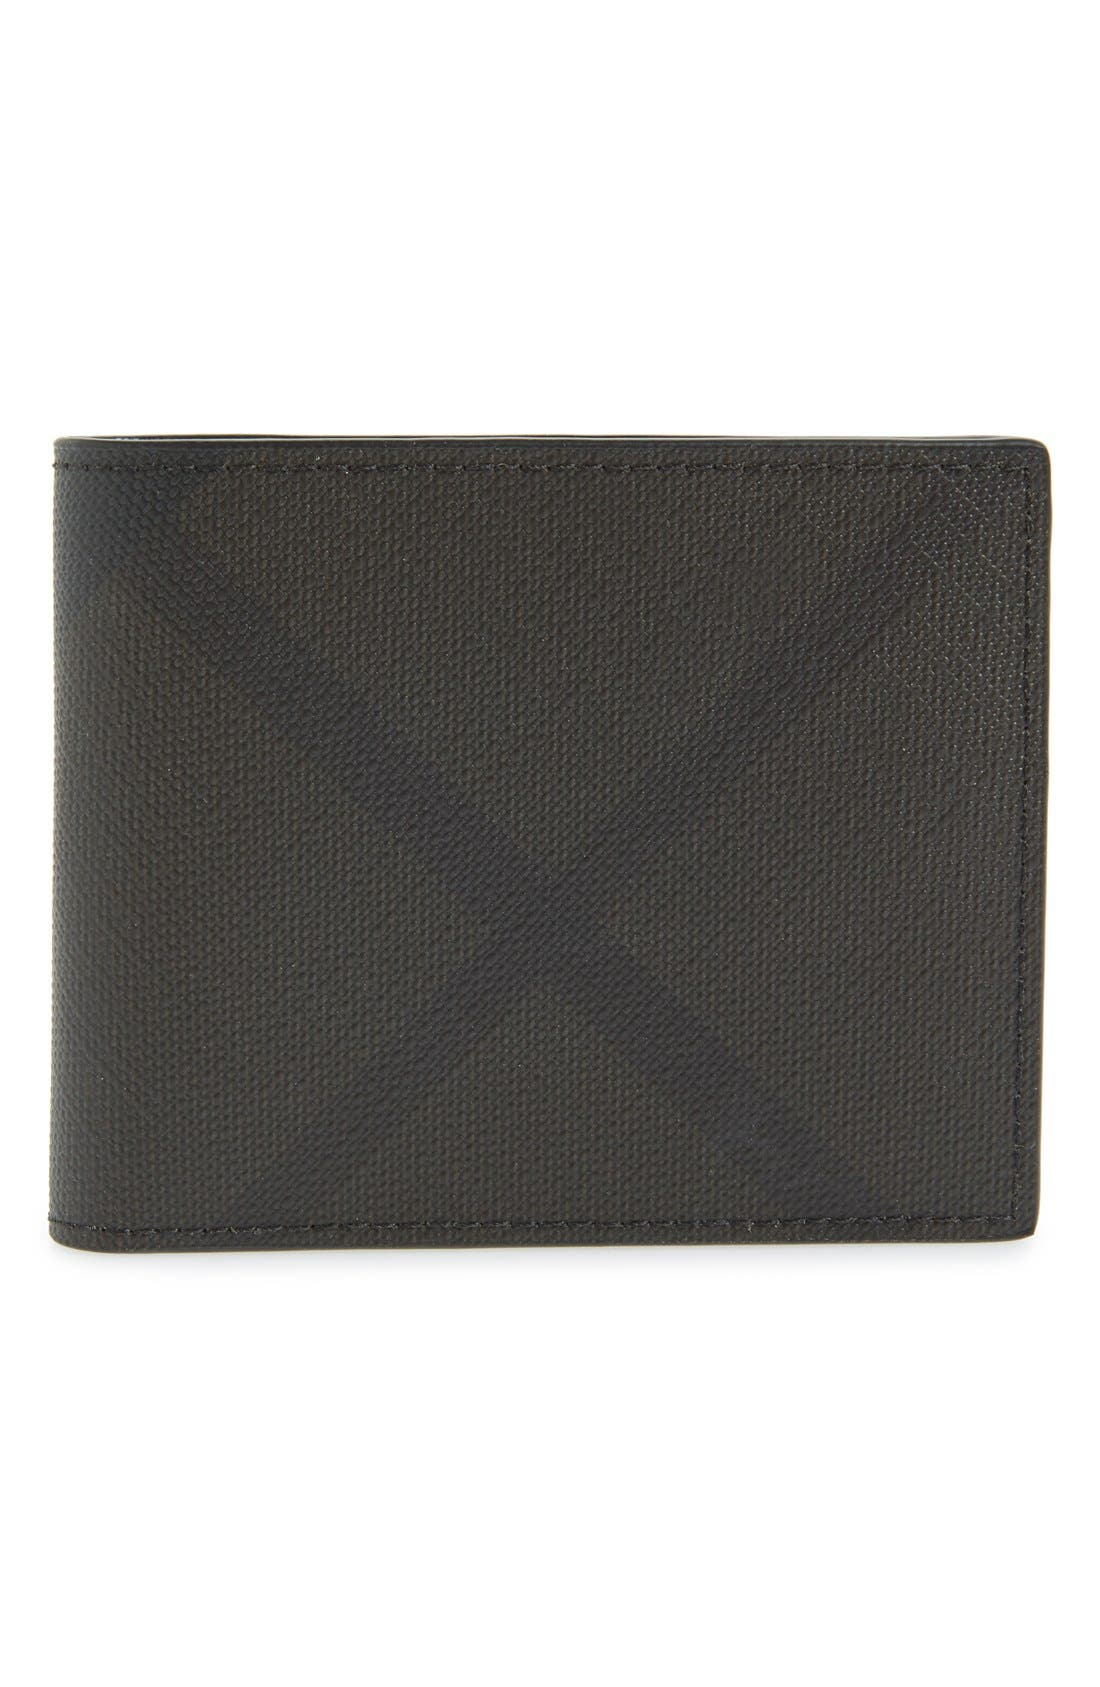 Alternate Image 1 Selected - Burberry Check Wallet